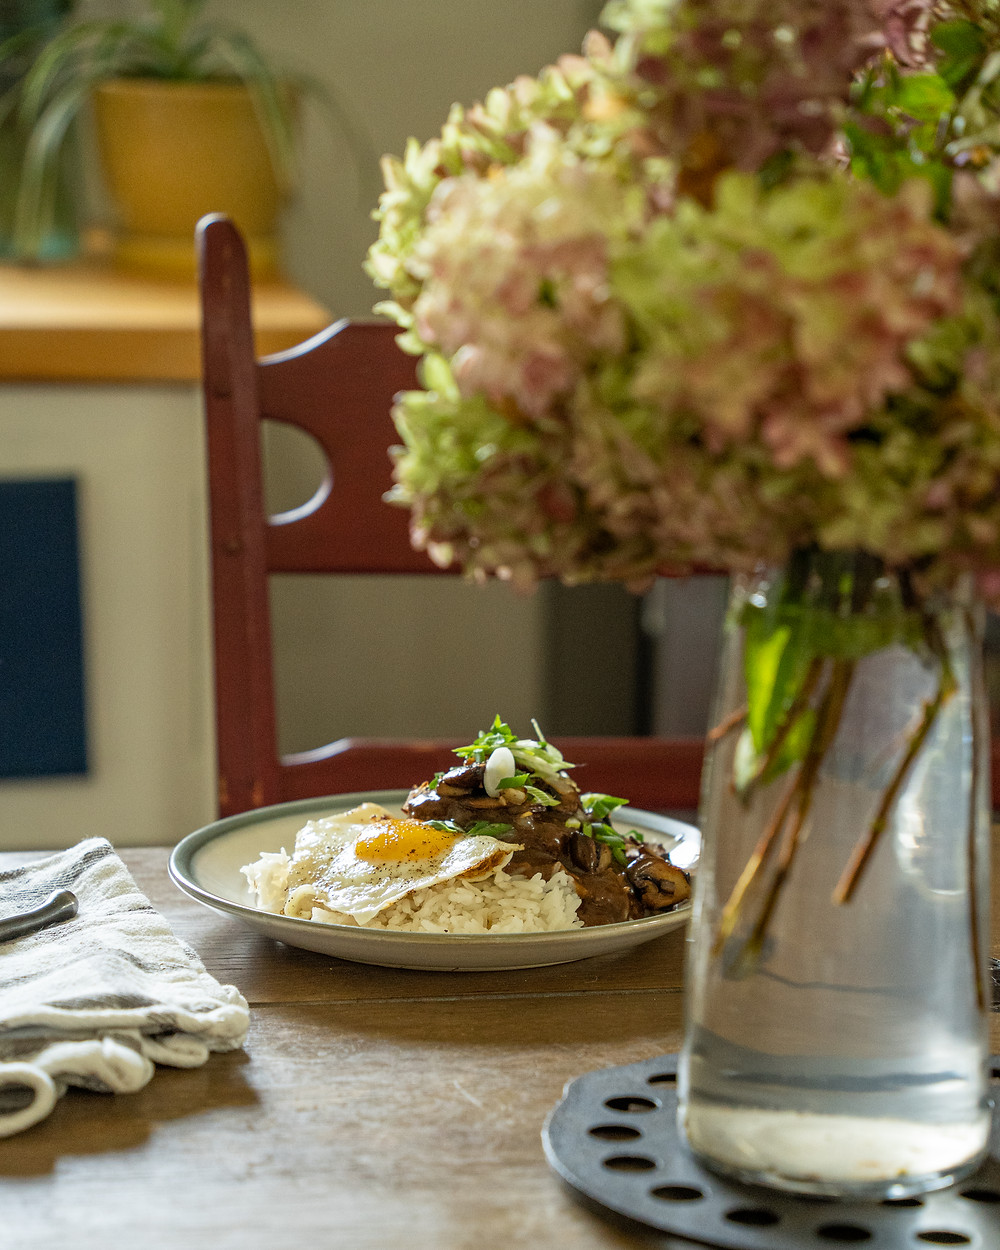 Loco Moco With Rely On Rach  - Vermont food photographer and content creator Rachel Averitt shares her recipe for loco moco.